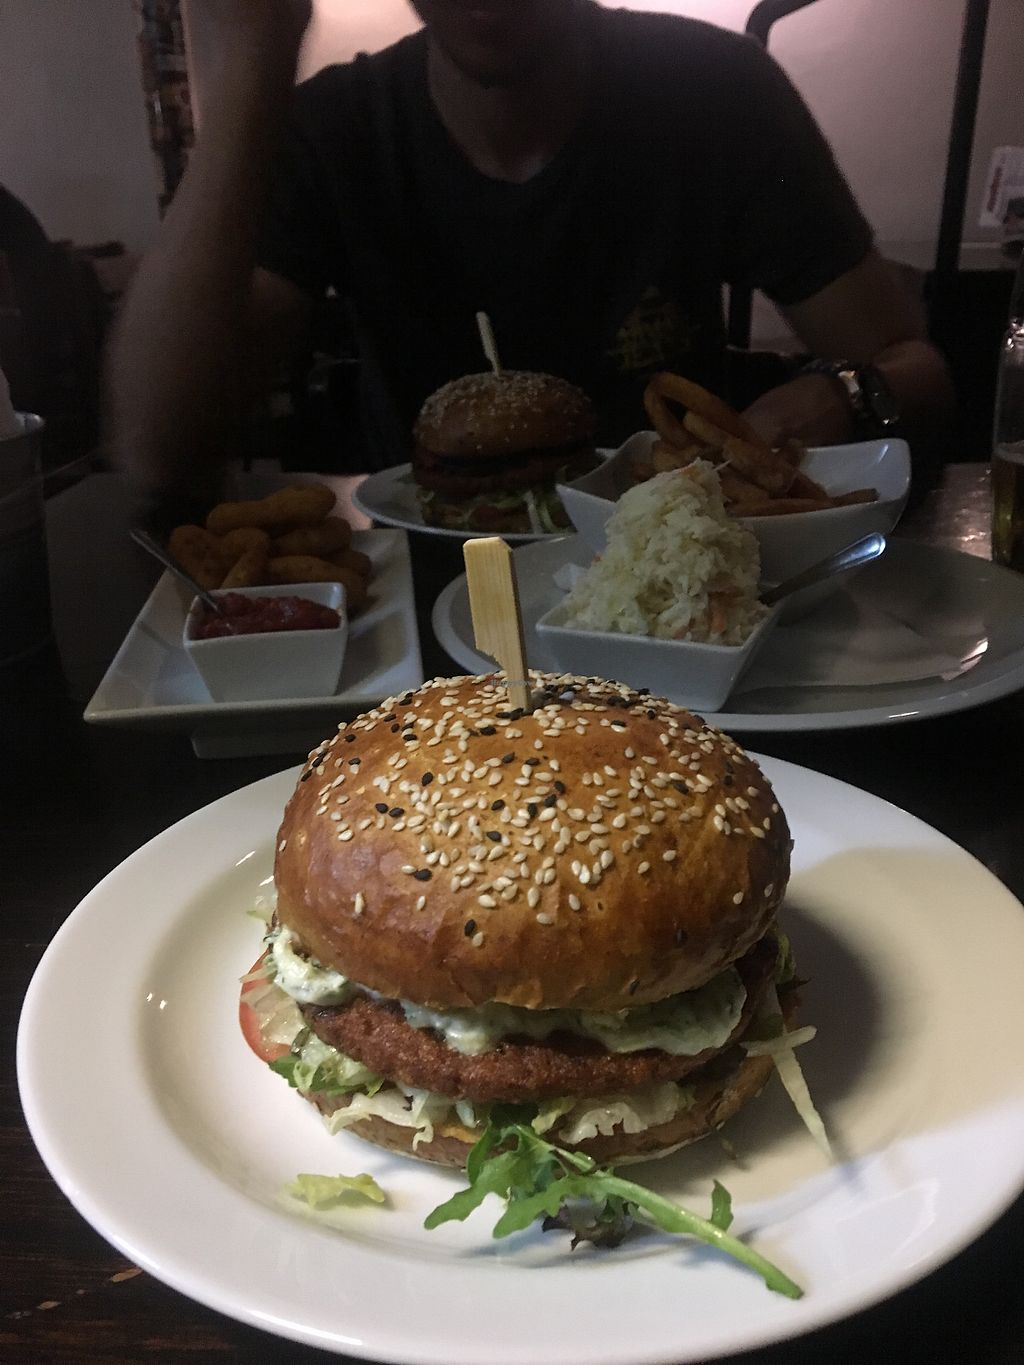 """Photo of Belzepub  by <a href=""""/members/profile/DomiGer"""">DomiGer</a> <br/>Best vegan burger <br/> November 5, 2017  - <a href='/contact/abuse/image/53523/322080'>Report</a>"""